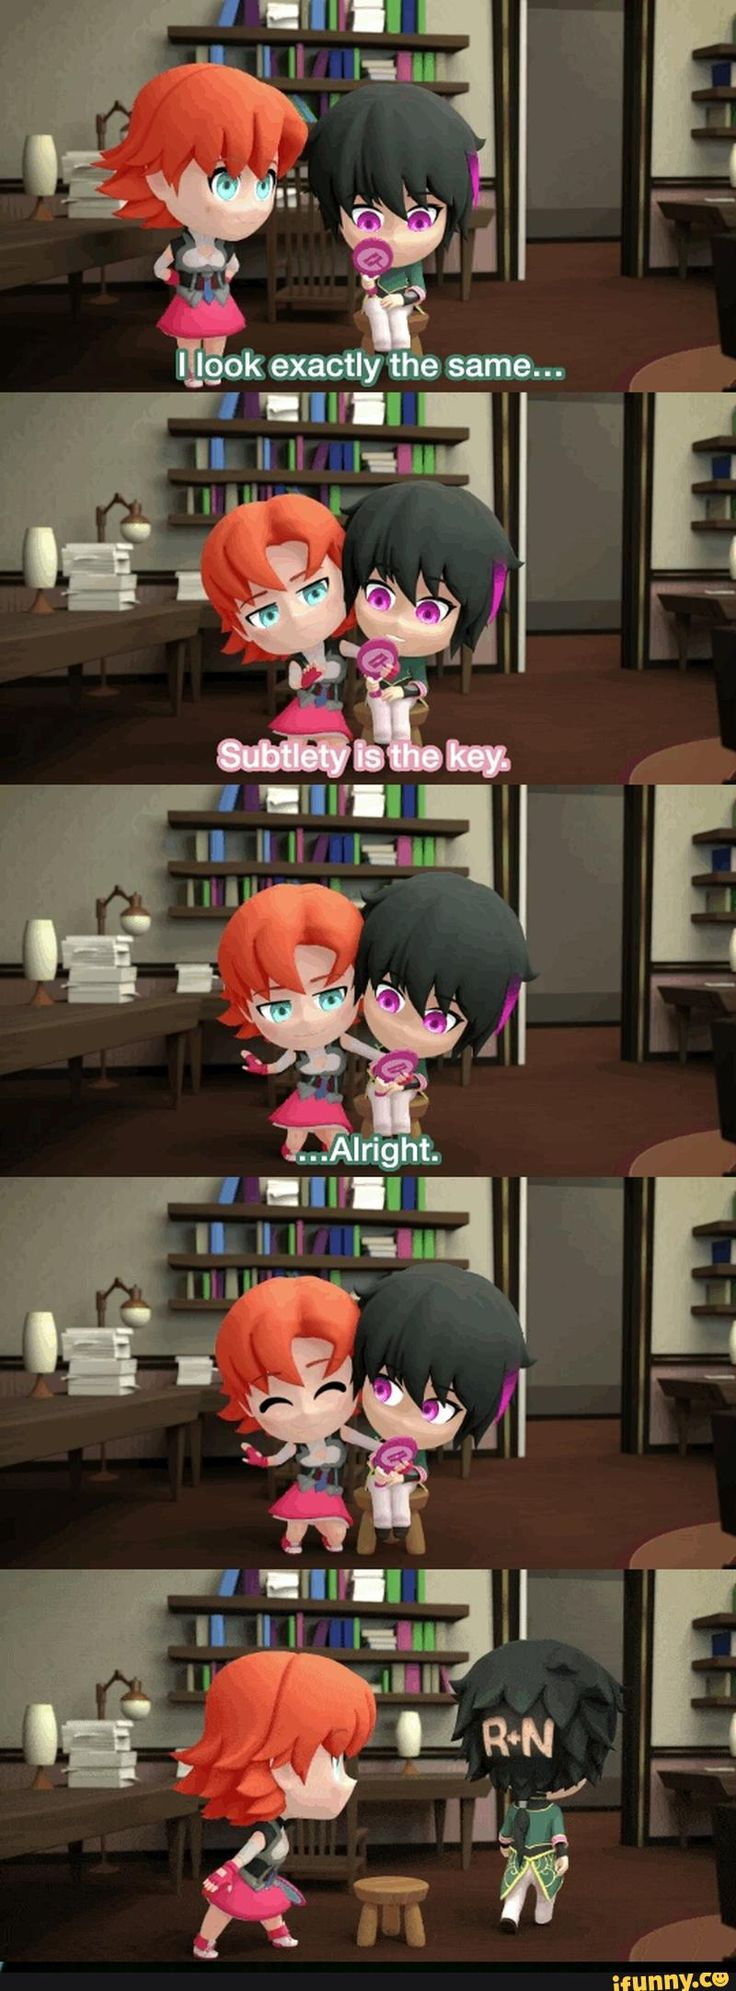 Rwby, Nora, Ren. I laughed so hard at this point!♡ ah~ I love it.